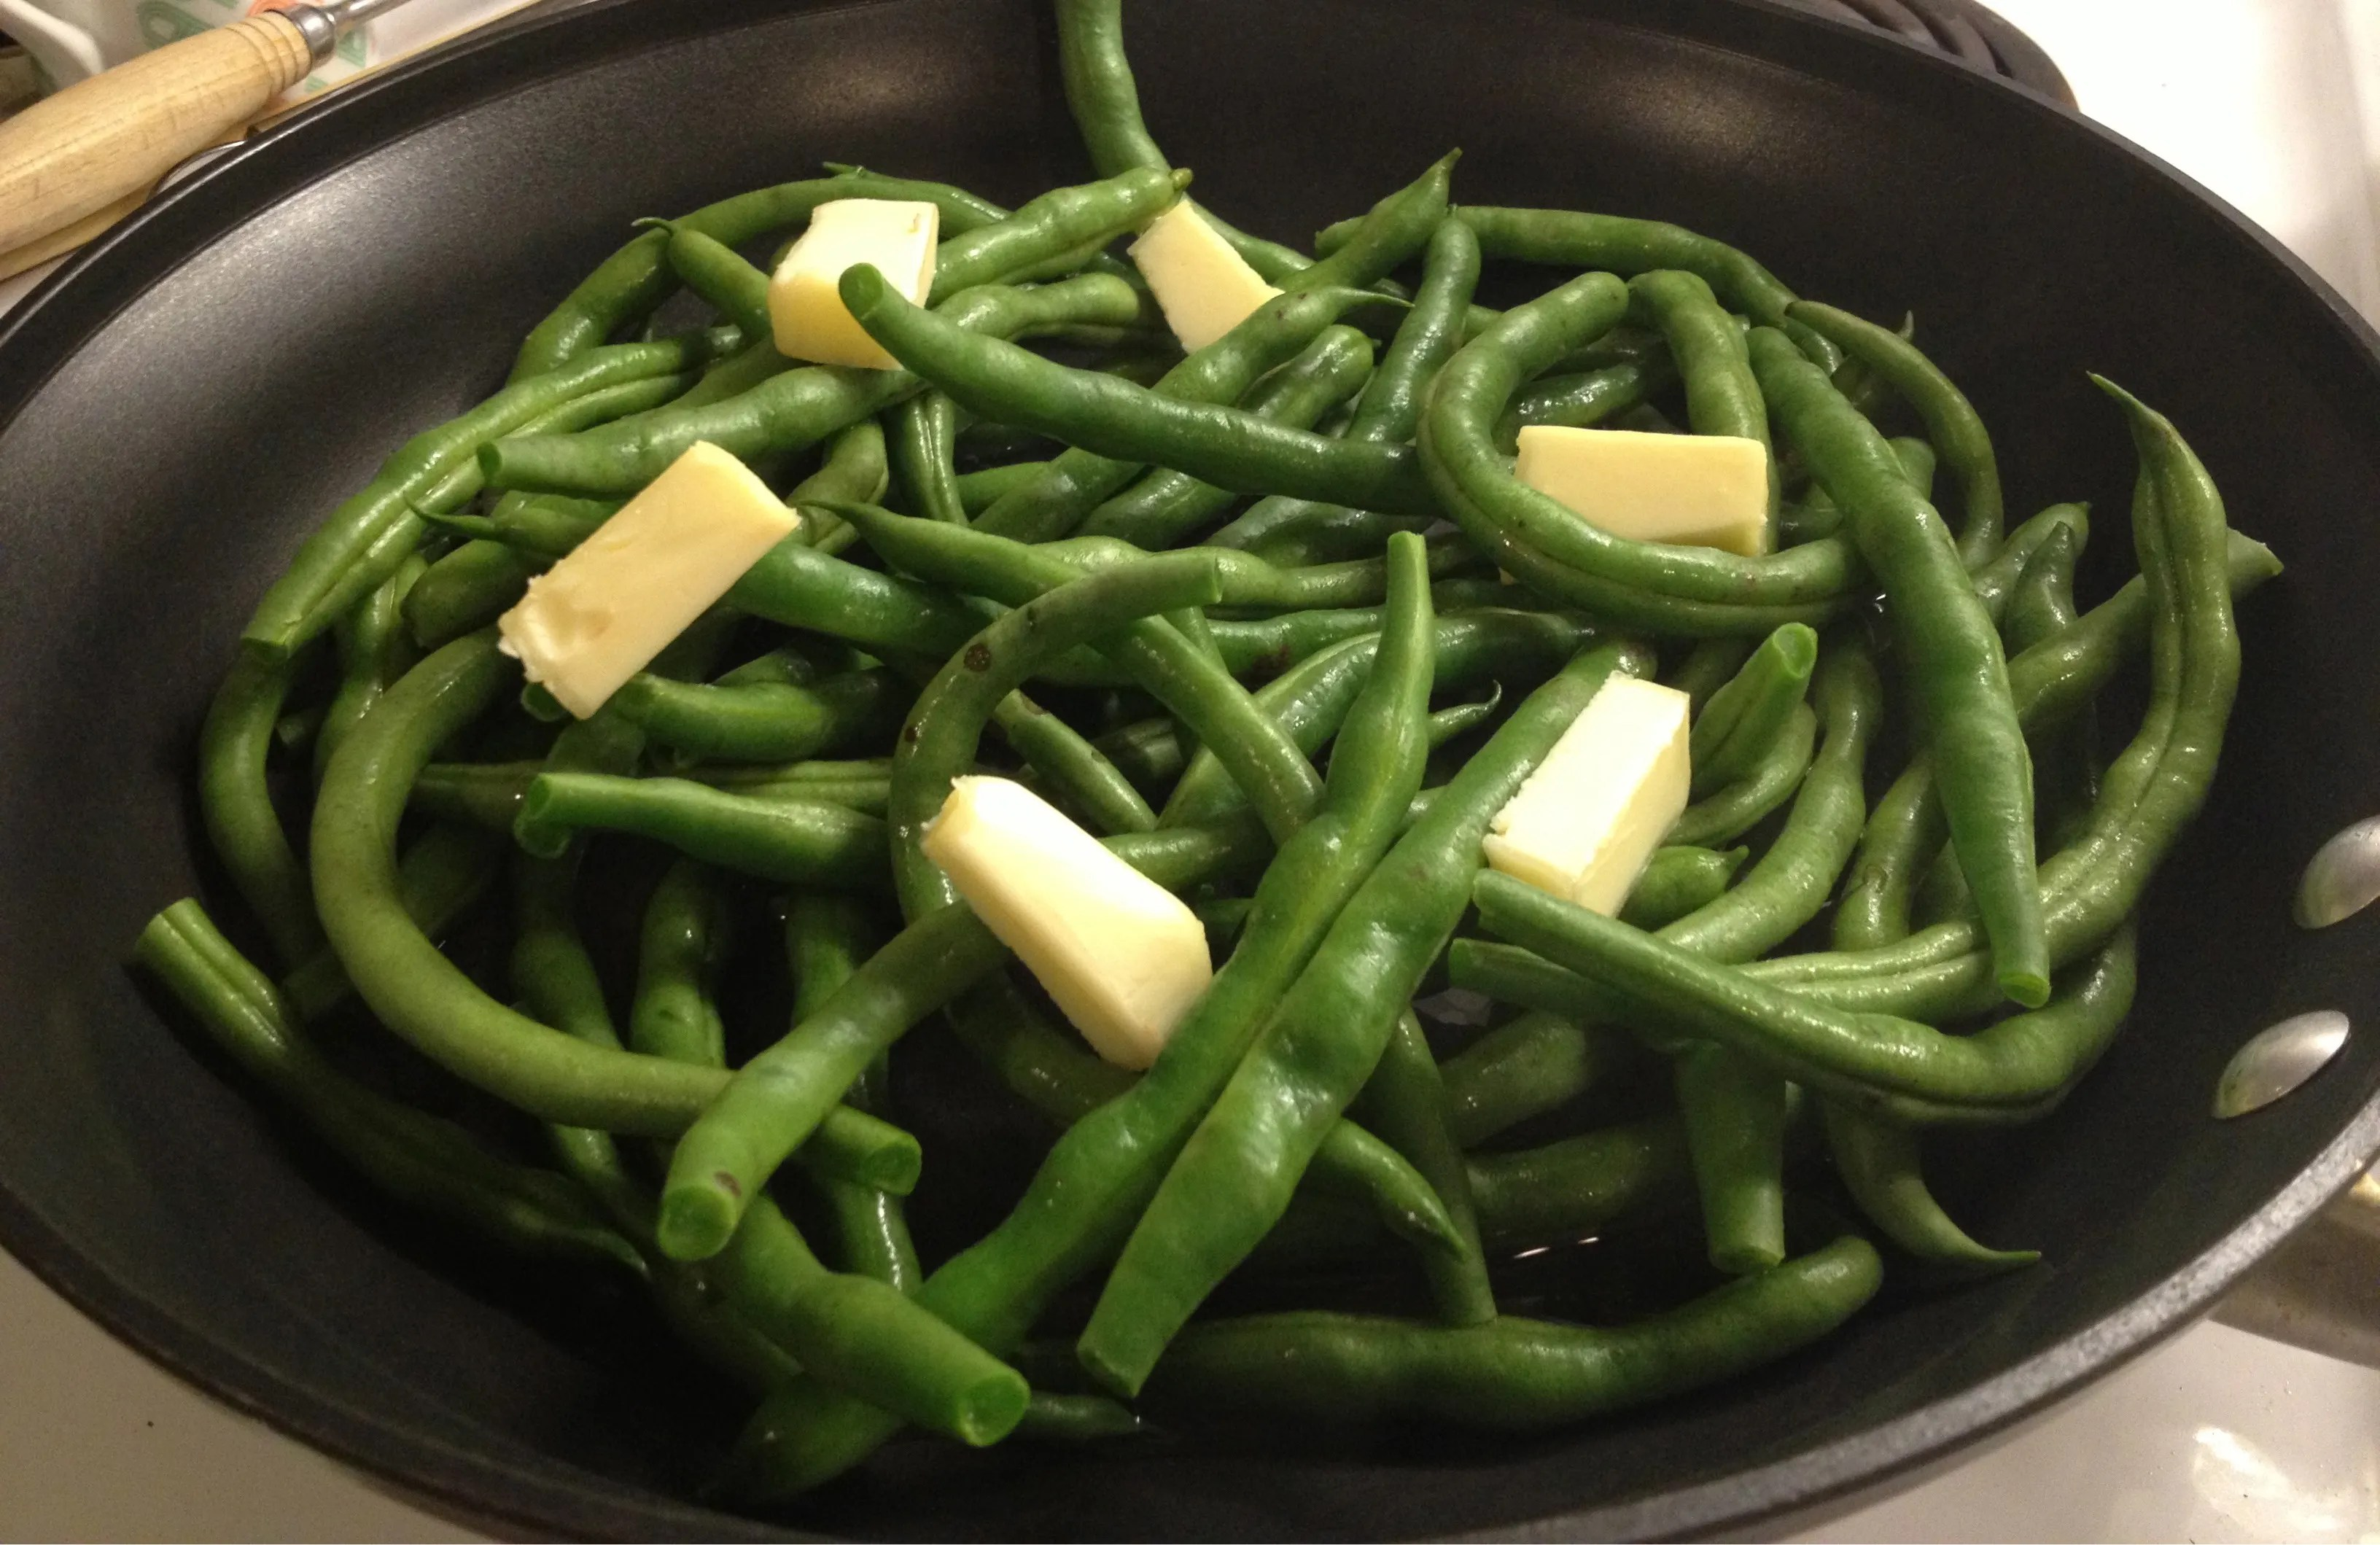 Green bean recipe with farm fresh beans, in a skillet with butter, ready to be cooked.